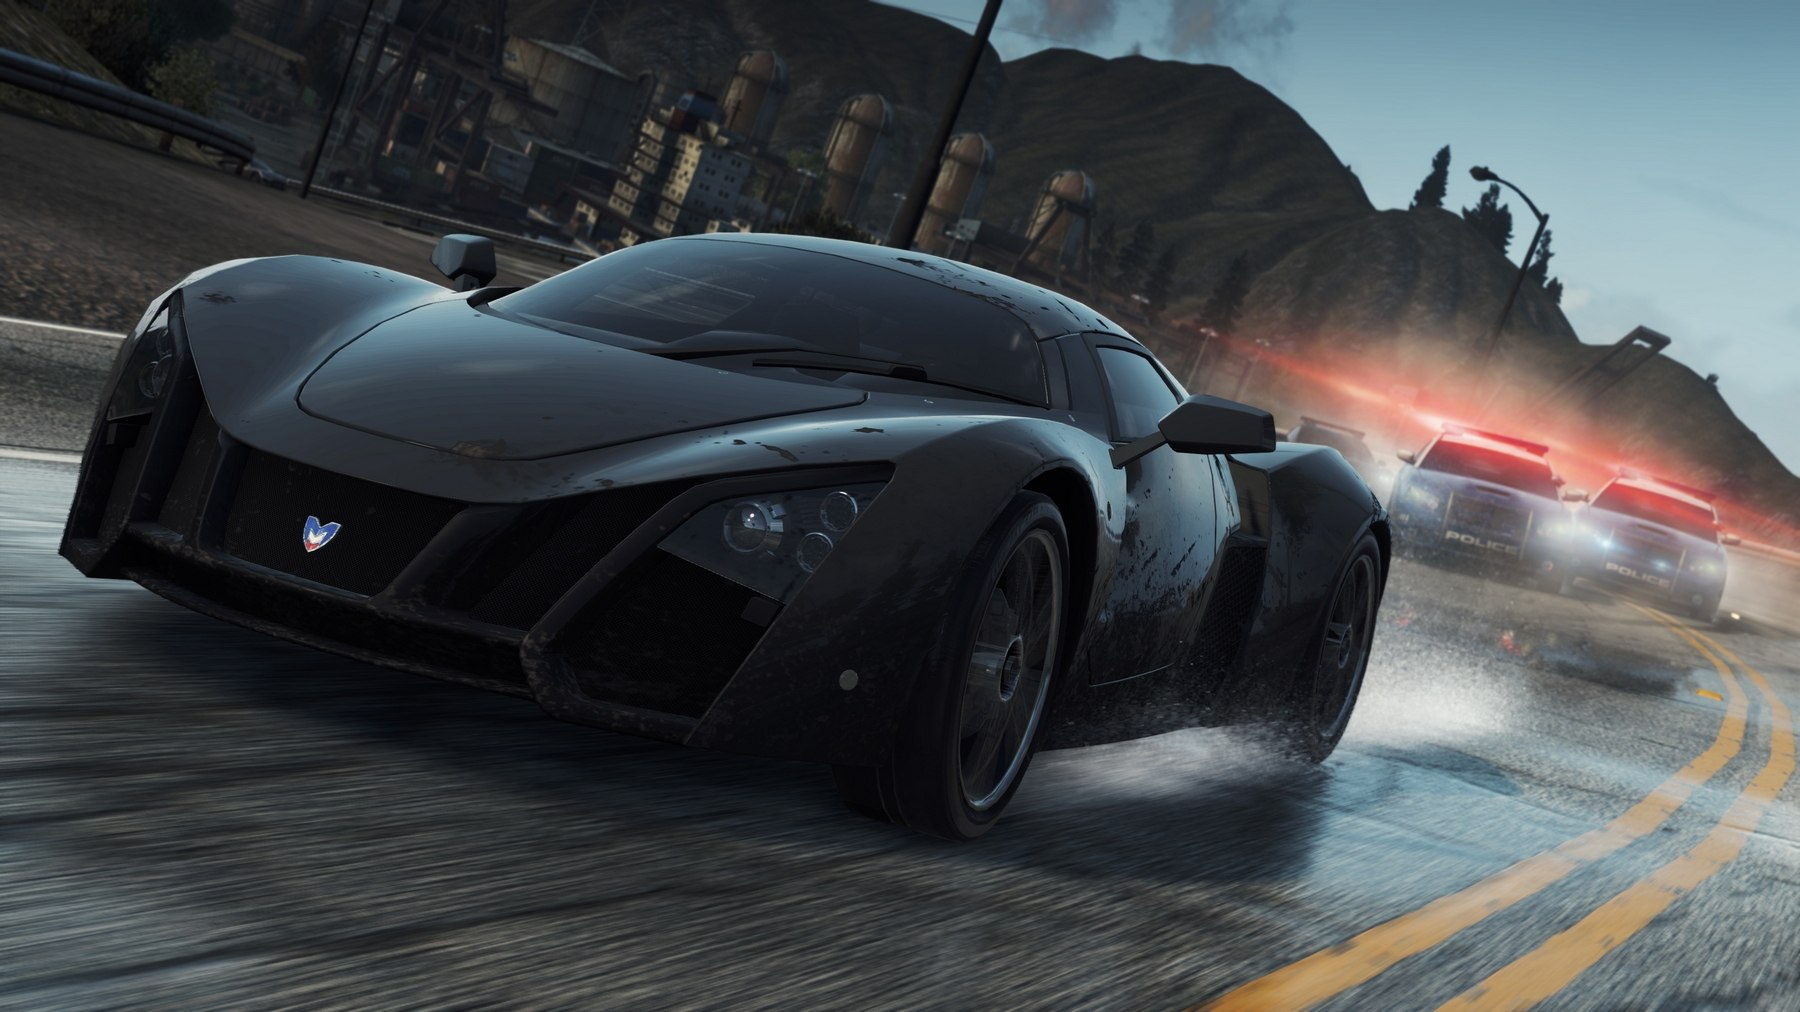 marussia b2 need for speed wiki fandom powered by wikia. Black Bedroom Furniture Sets. Home Design Ideas